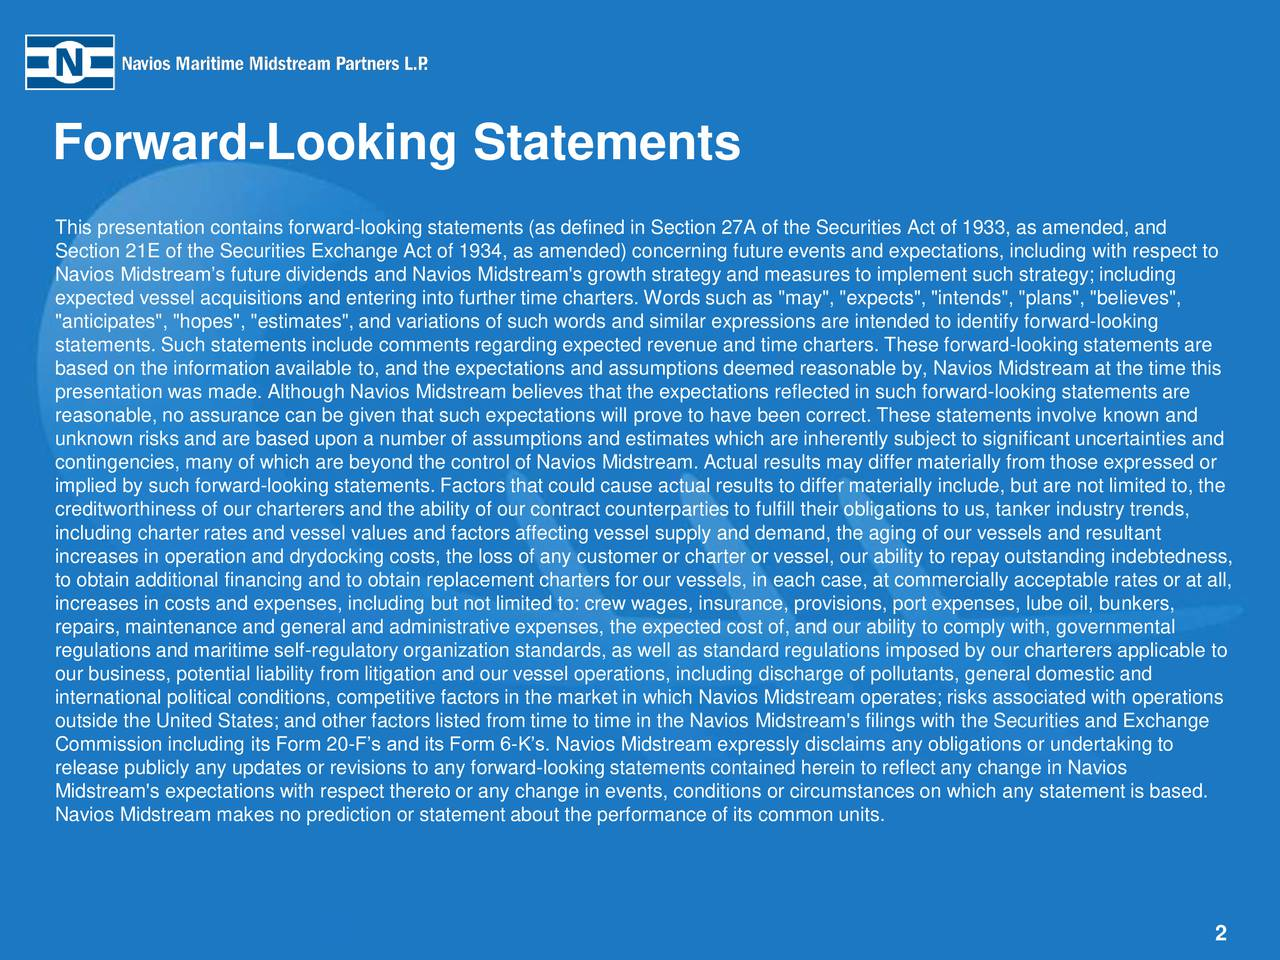 """Forward-Looking Statements This presentation contains forward-looking statements (as defined in Section 27A of the Securities Act of 1933, as amended, and Section 21E of the Securities Exchange Act of 1934, as amended) concerning future events and expectations, including with respect to Navios Midstreams future dividends and Navios Midstream's growth strategy and measures to implement such strategy; including expected vessel acquisitions and entering into further time charters. Words such as """"may"""", """"expects"""", """"intends"""", """"plans"""", """"believes"""", """"anticipates"""", """"hopes"""", """"estimates"""", and variations of such words and similar expressions are intended to identify forward-looking statements. Such statements include comments regarding expected revenue and time charters. These forward-looking statements are based on the information available to, and the expectations and assumptions deemed reasonable by, Navios Midstream at the time this presentation was made. Although Navios Midstream believes that the expectations reflected in such forward-looking statements are reasonable, no assurance can be given that such expectations will prove to have been correct. These statements involve known and unknown risks and are based upon a number of assumptions and estimates which are inherently subject to significant uncertainties and contingencies, many of which are beyond the control of Navios Midstream. Actual results may differ materially from those expressed or implied by such forward-looking statements. Factors that could cause actual results to differ materially include, but are not limited to, the creditworthiness of our charterers and the ability of our contract counterparties to fulfill their obligations to us, tanker industry trends, including charter rates and vessel values and factors affecting vessel supply and demand, the aging of our vessels and resultant increases in operation and drydocking costs, the loss of any customer or charter or vessel, our ability to repay outstanding"""